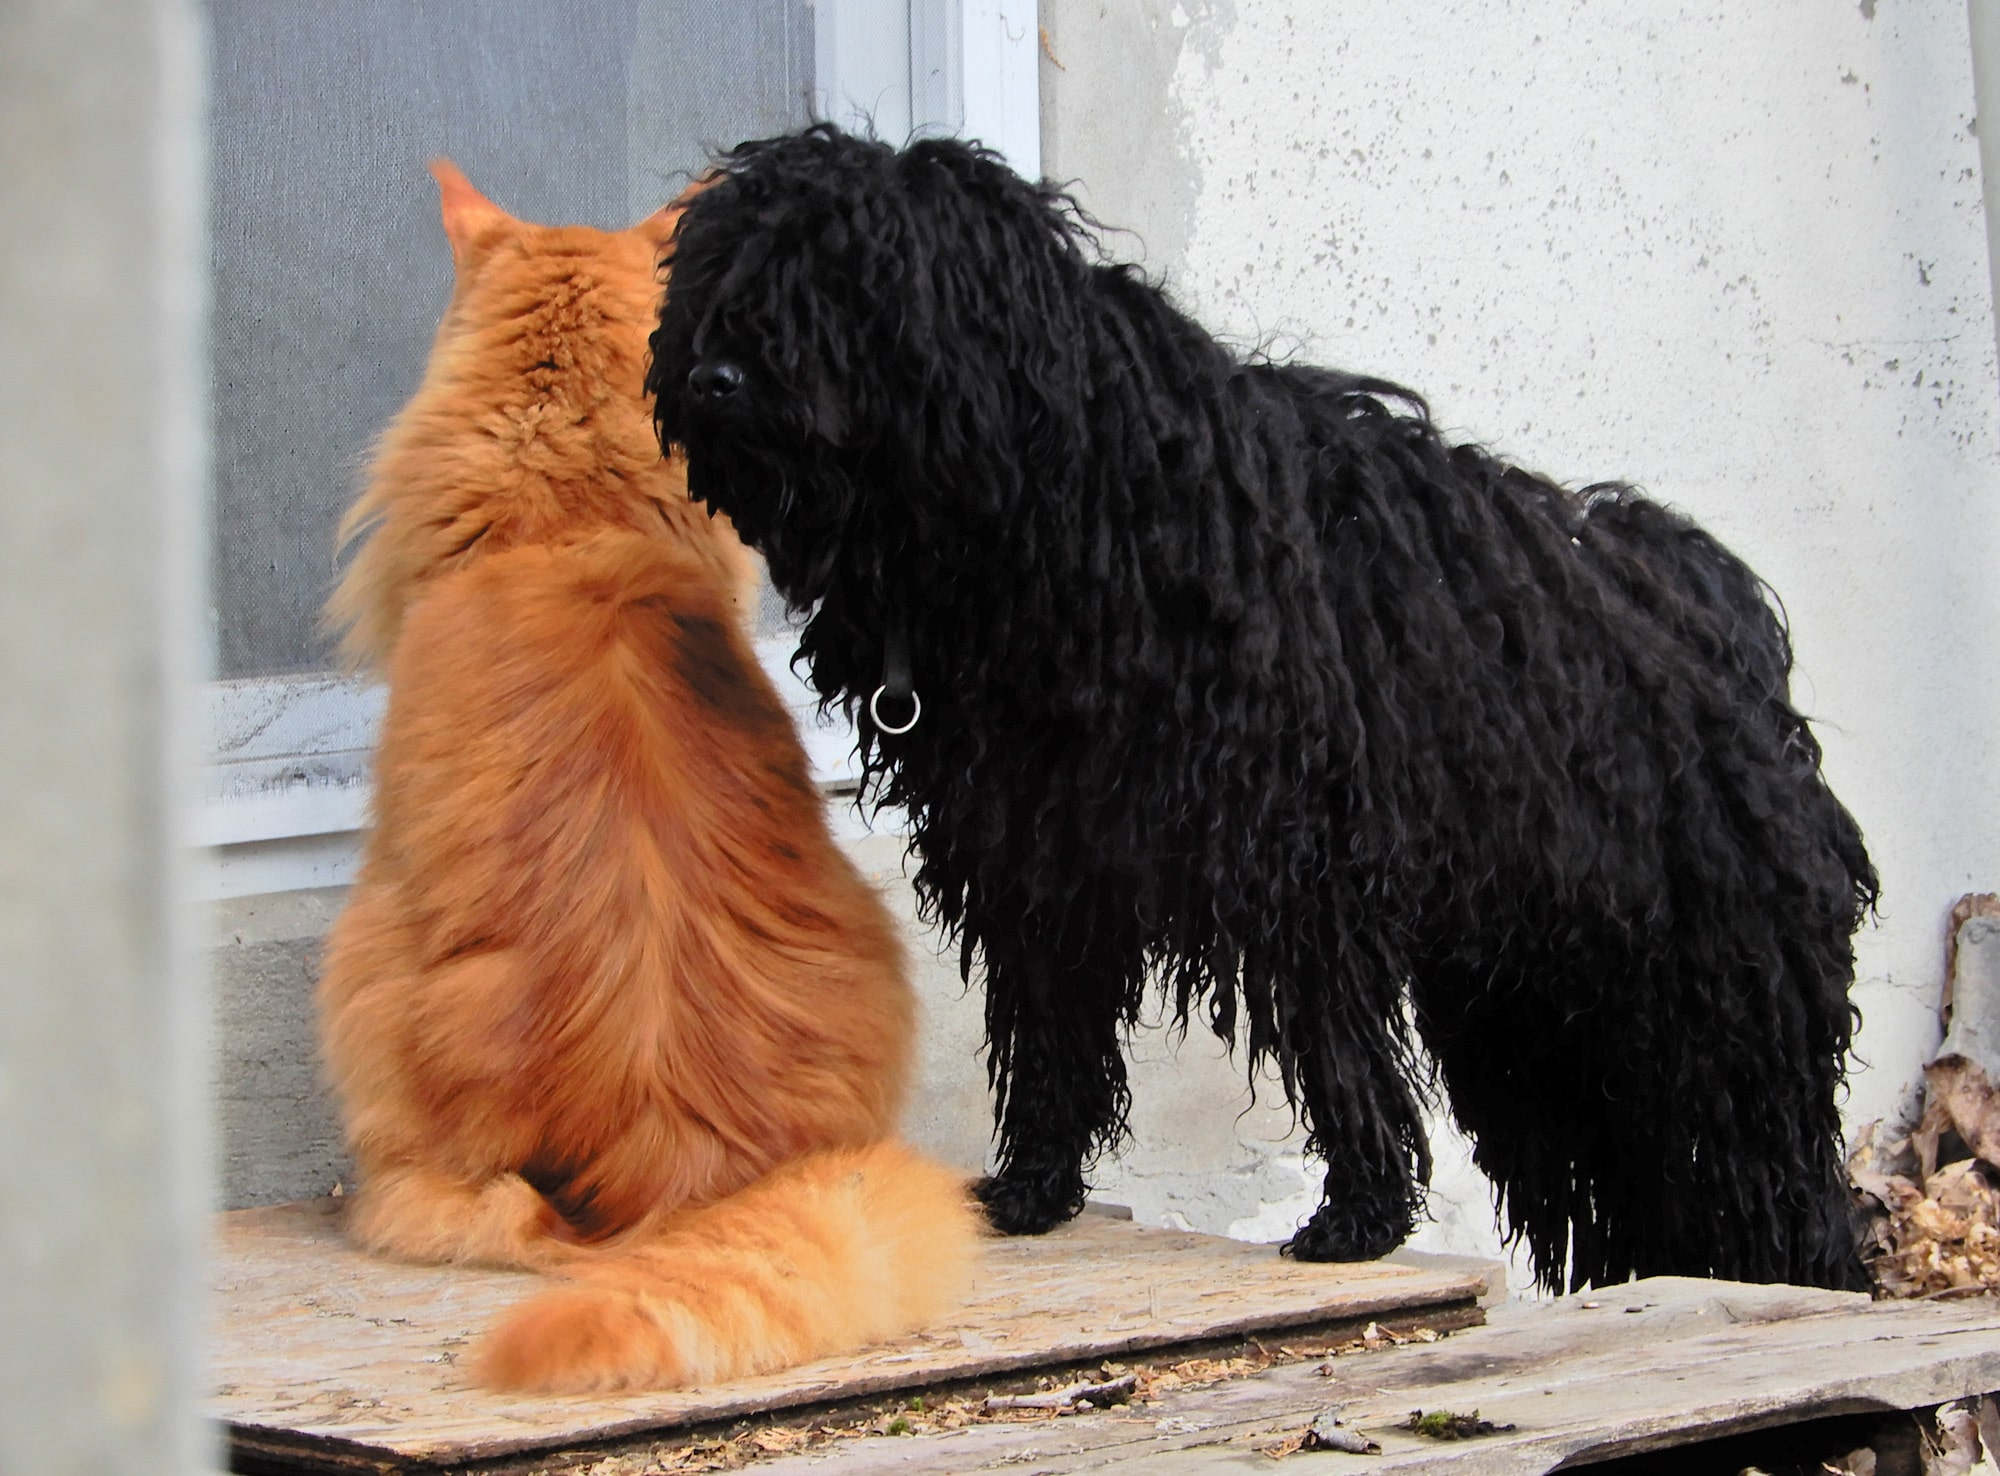 Puli and cat guard together